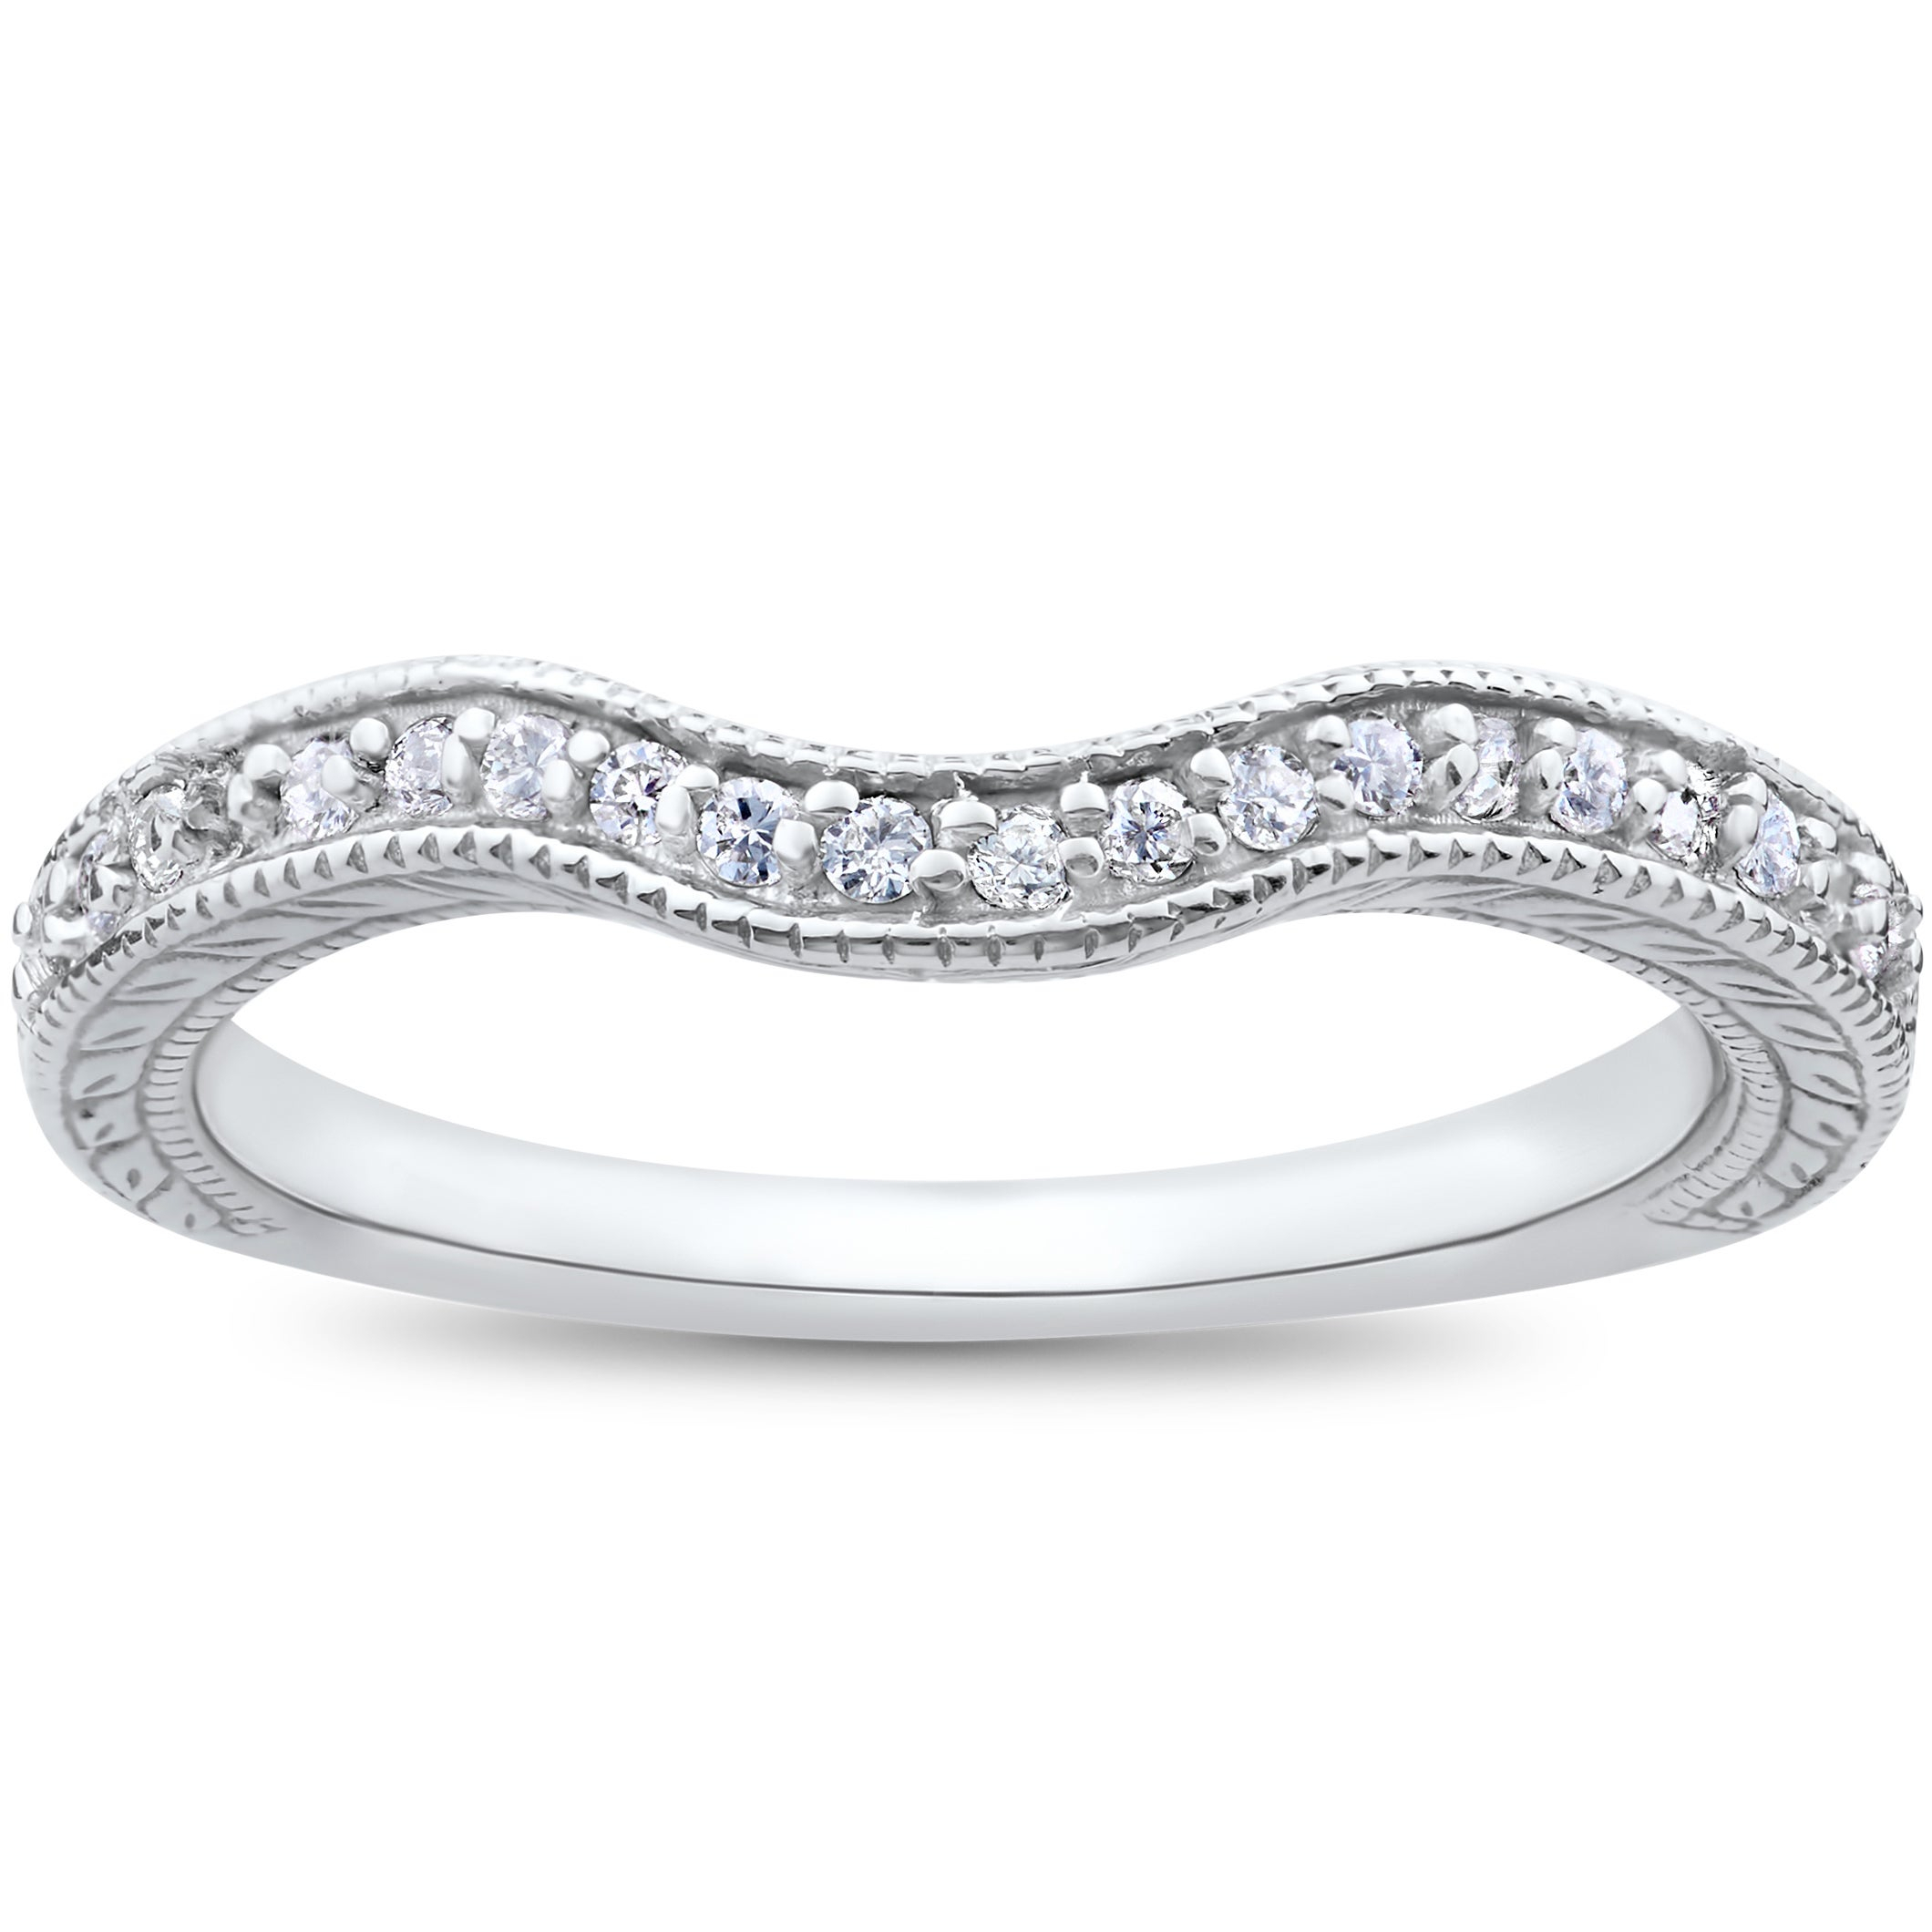 14k White Gold 1/6ct Vintage Curved Diamond Contour Wedding Band For Engagement Ring In Latest Diamond Contour Anniversary Bands In White Gold (View 4 of 25)